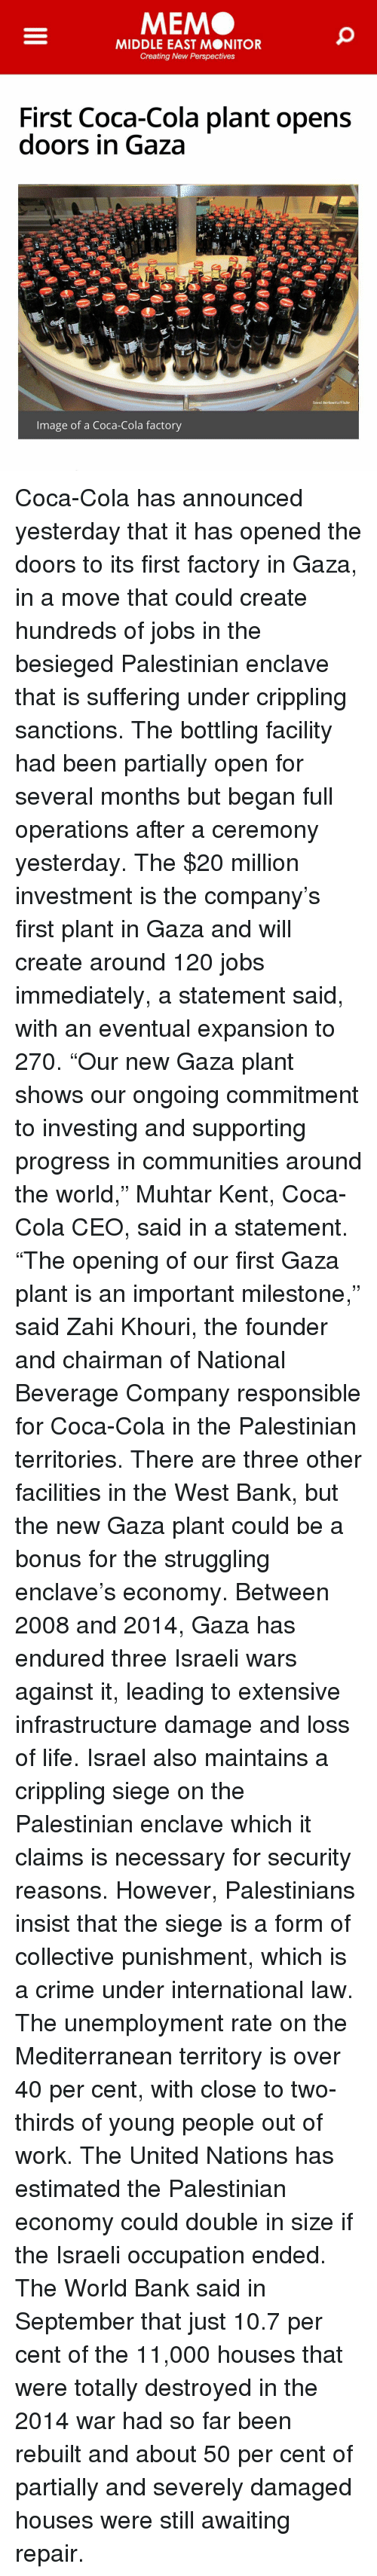 MEM MIDDLE EAST MONITOR Creating New Perspectives First Coca-Cola ...